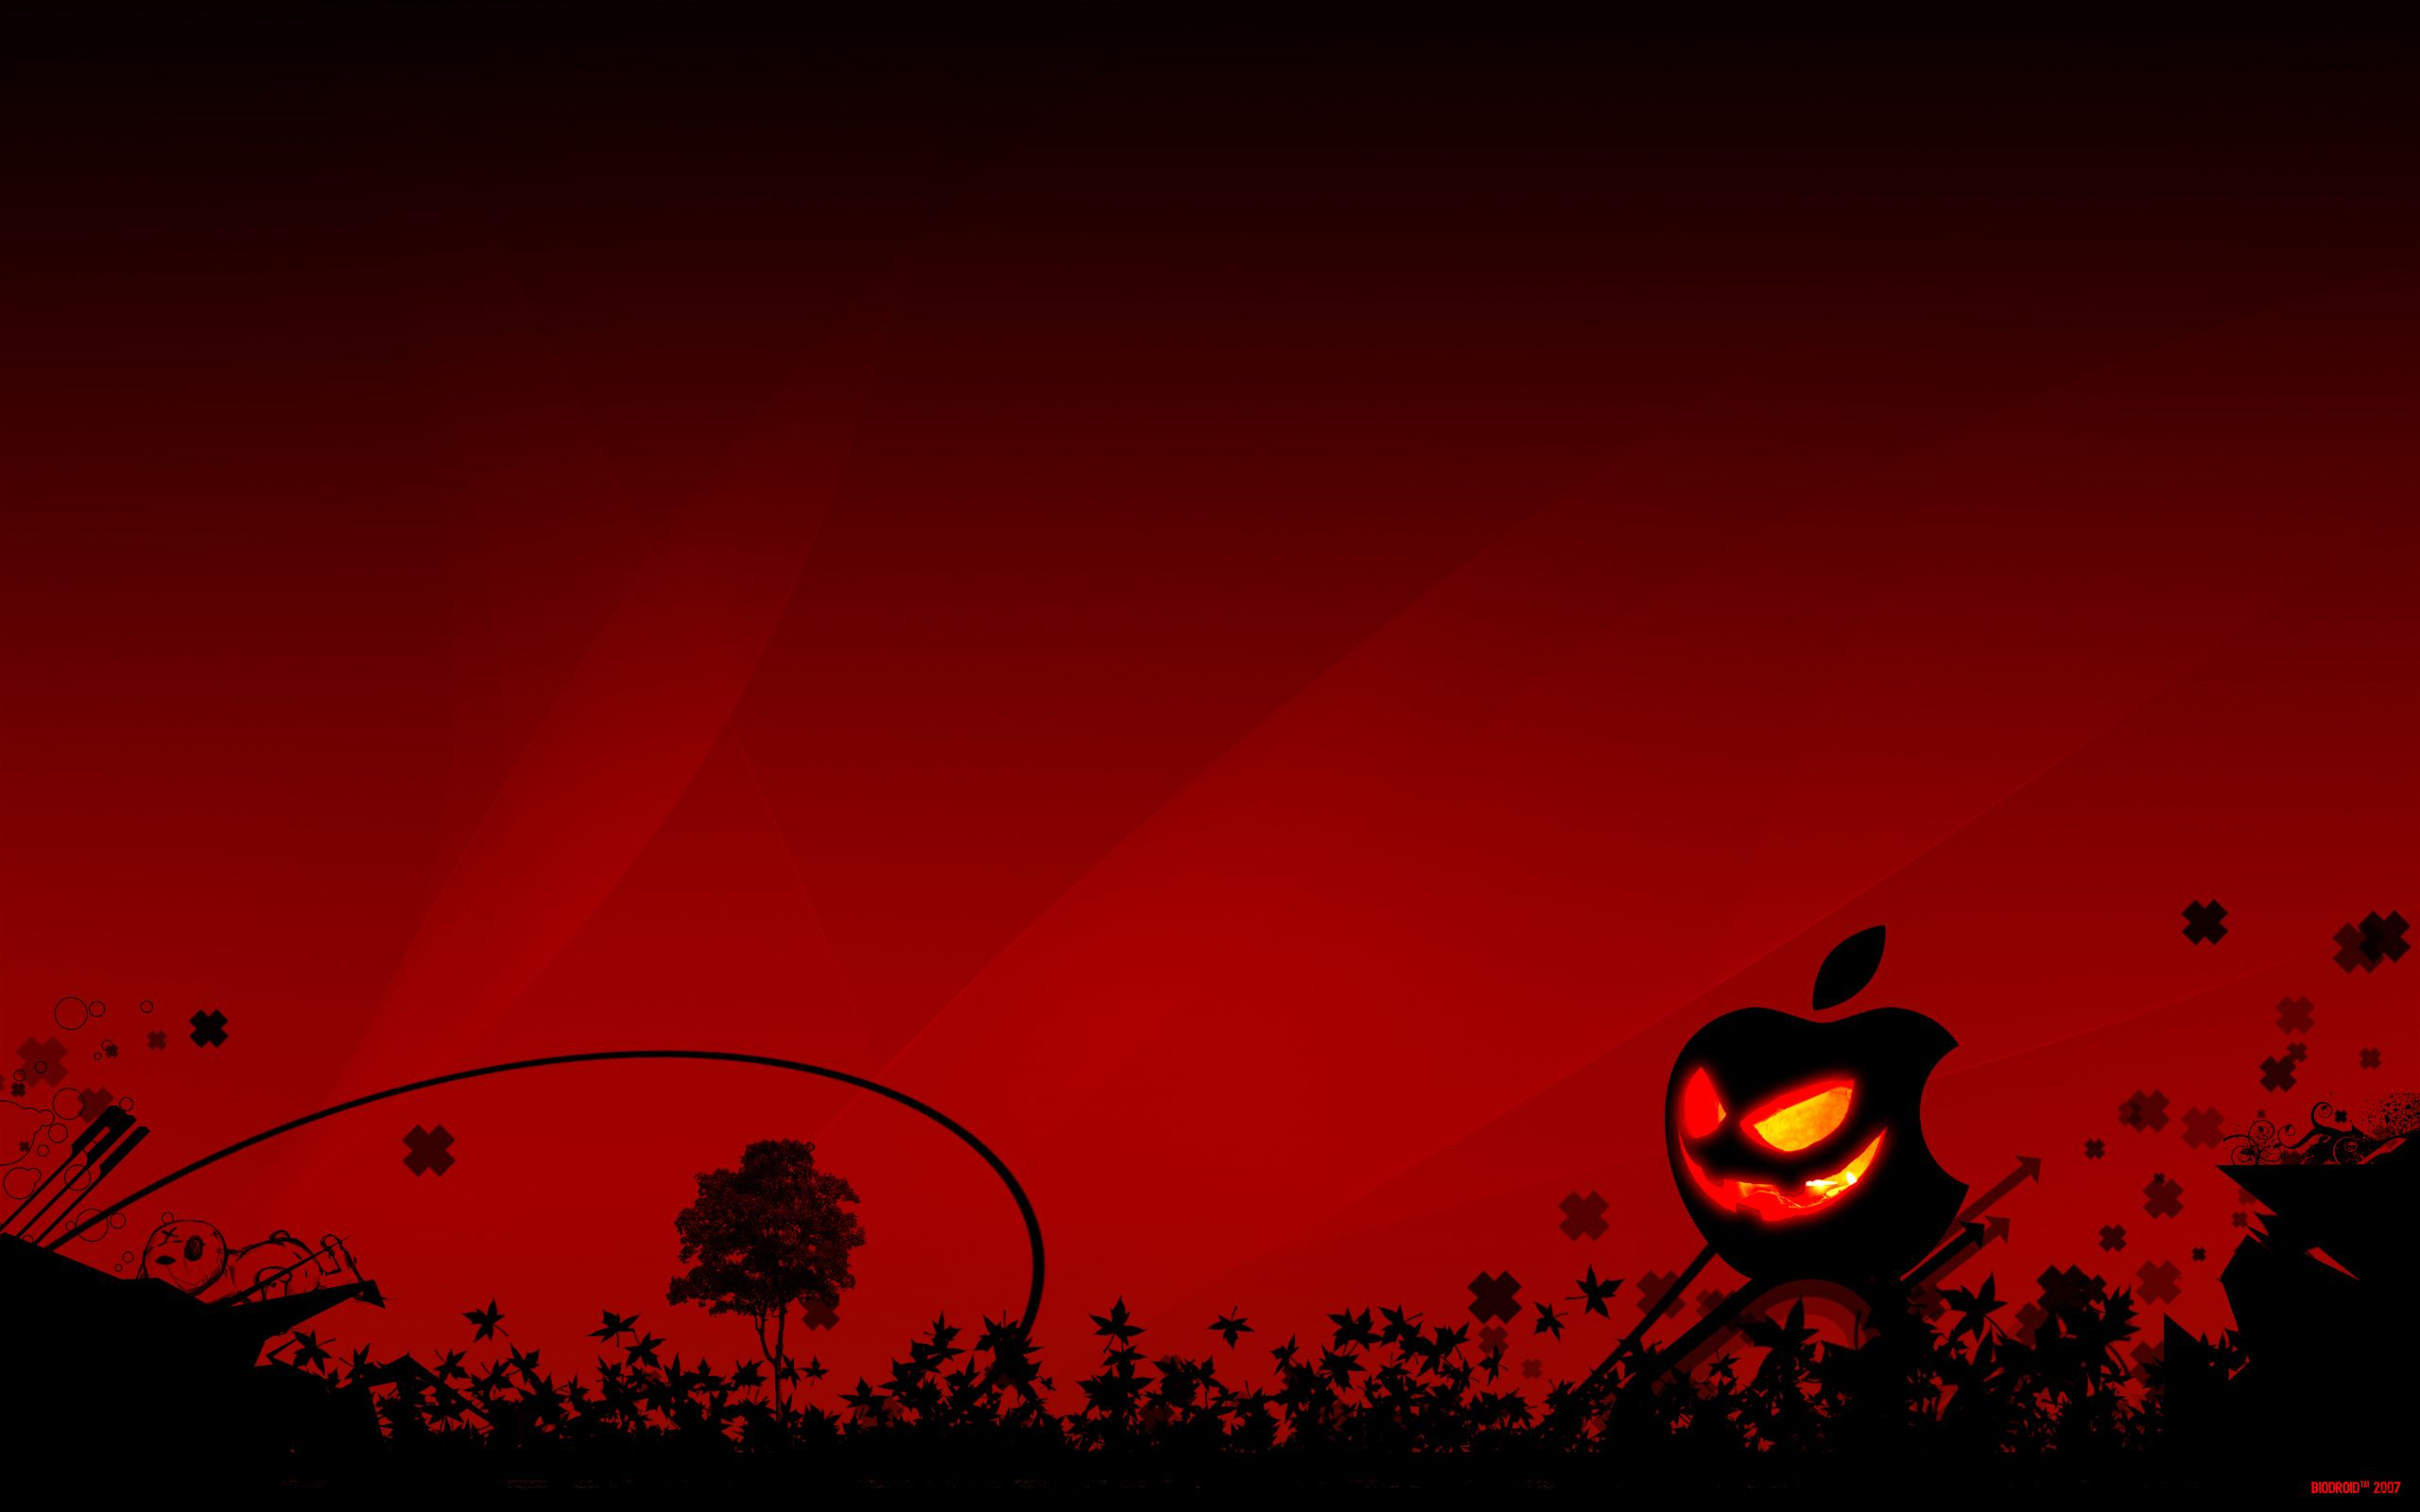 Download Wallpaper Macbook Halloween - 4150ad3ecaefe2f71a5655543424f2e2  Trends_67726.jpg